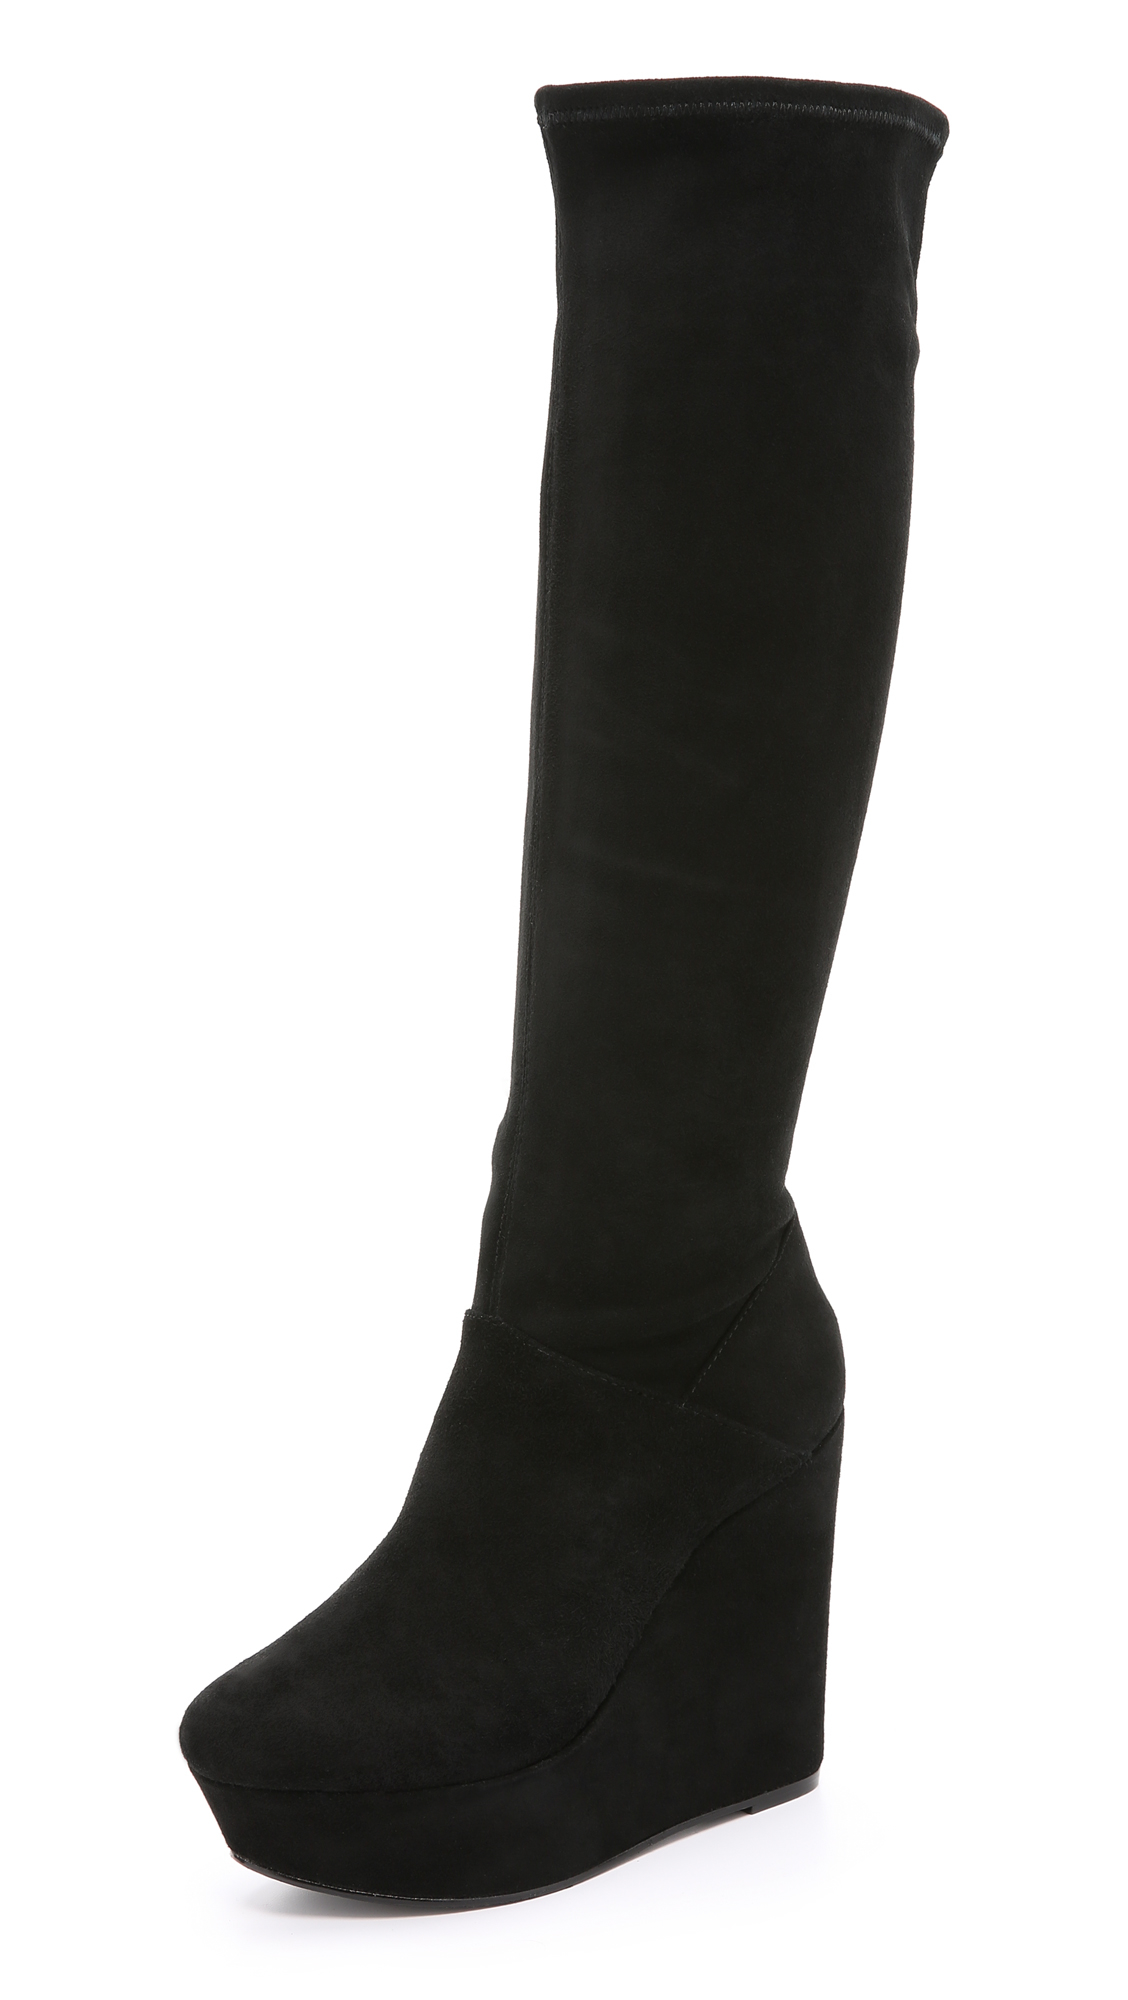 Alice   olivia Yula Suede Wedge Tall Boots in Black | Lyst